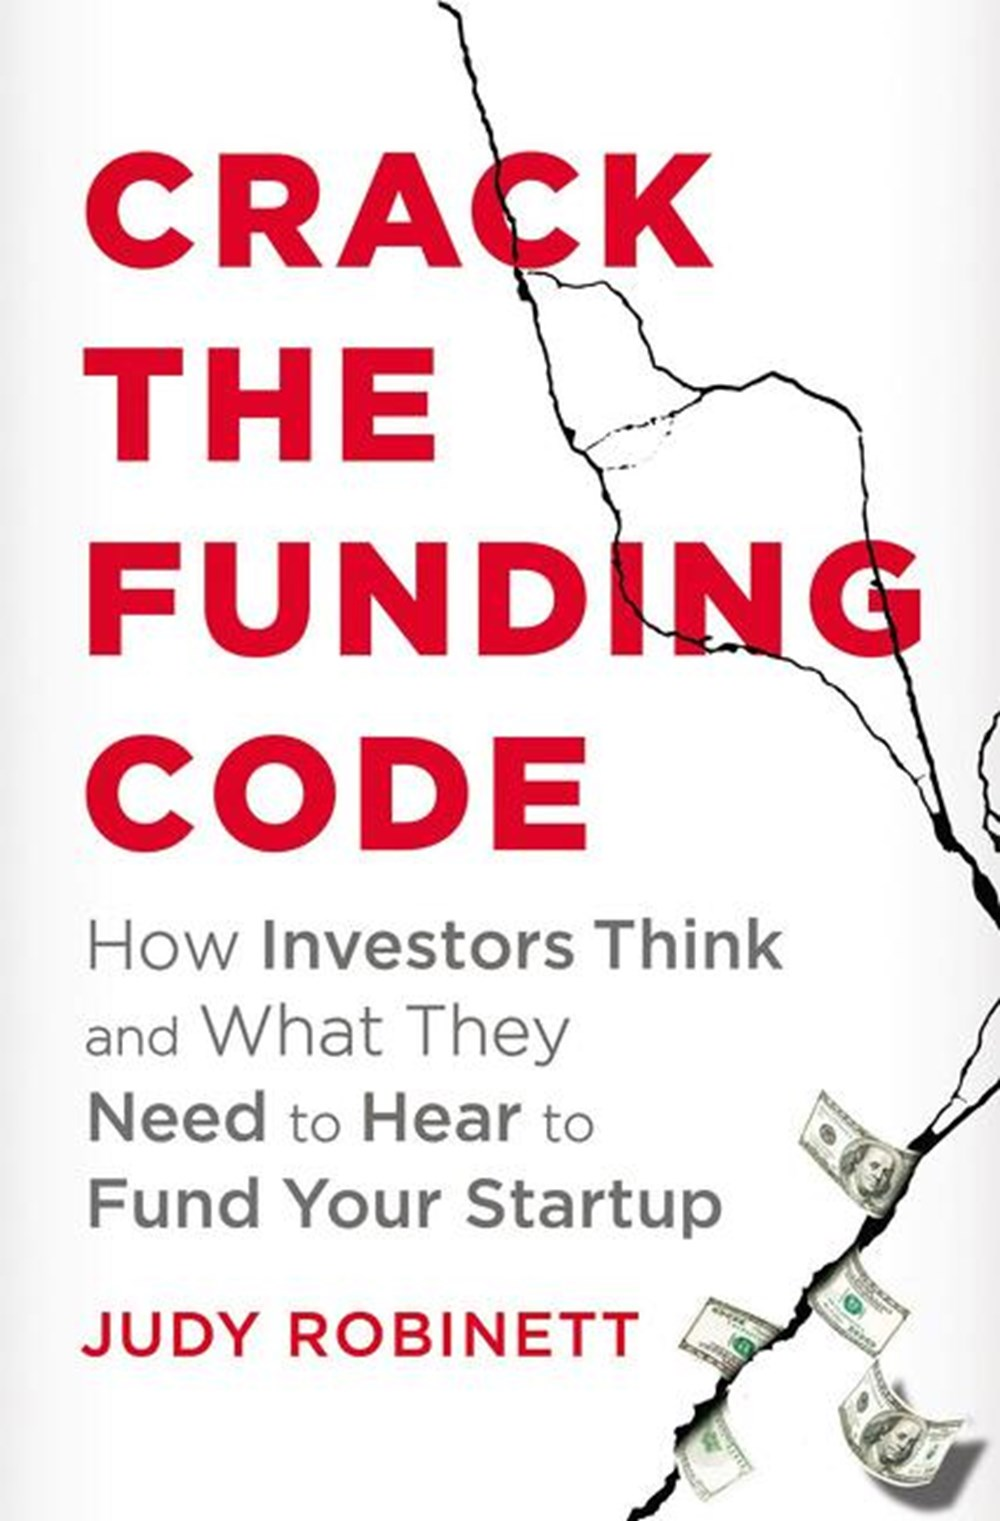 Crack the Funding Code How Investors Think and What They Need to Hear to Fund Your Startup